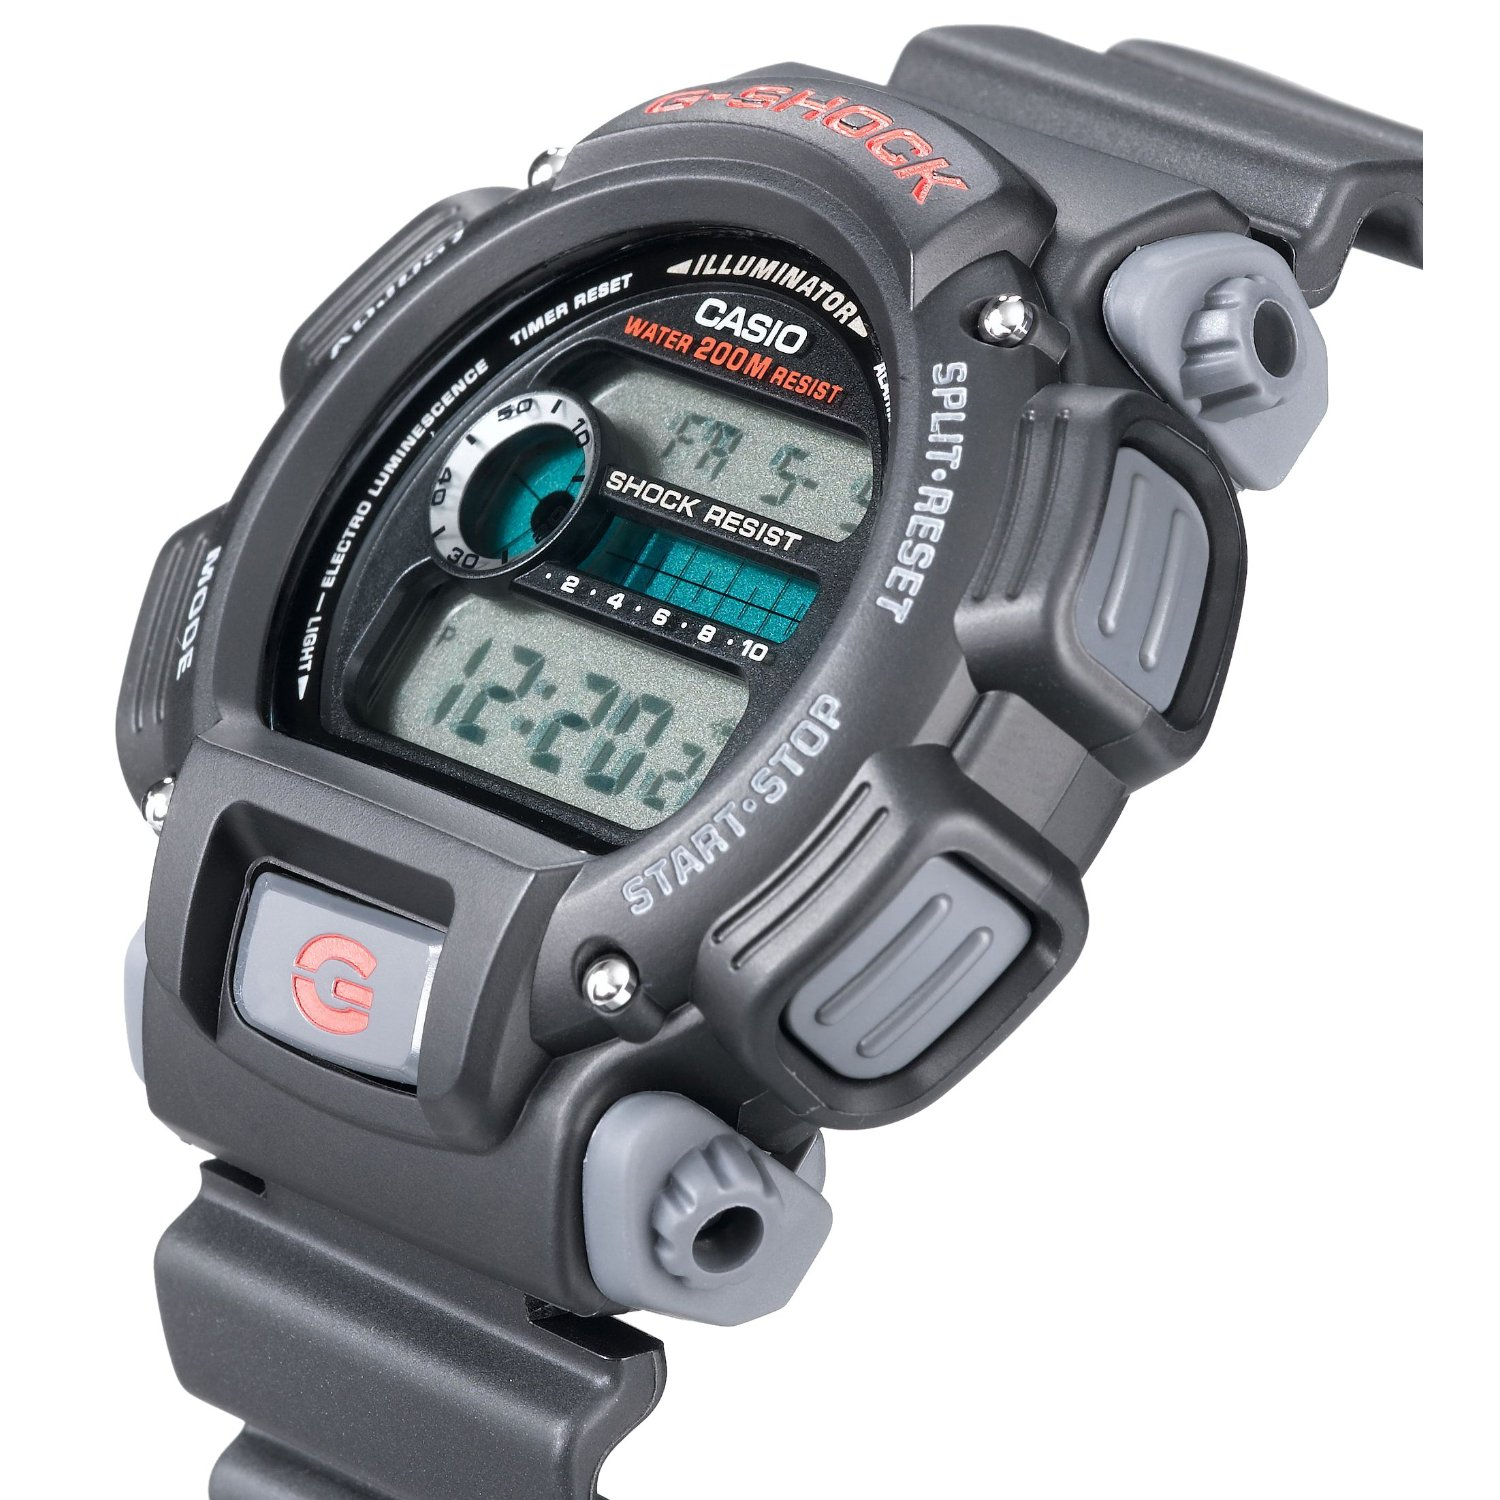 fashionable watches g shock casio s dw9052 1v classic